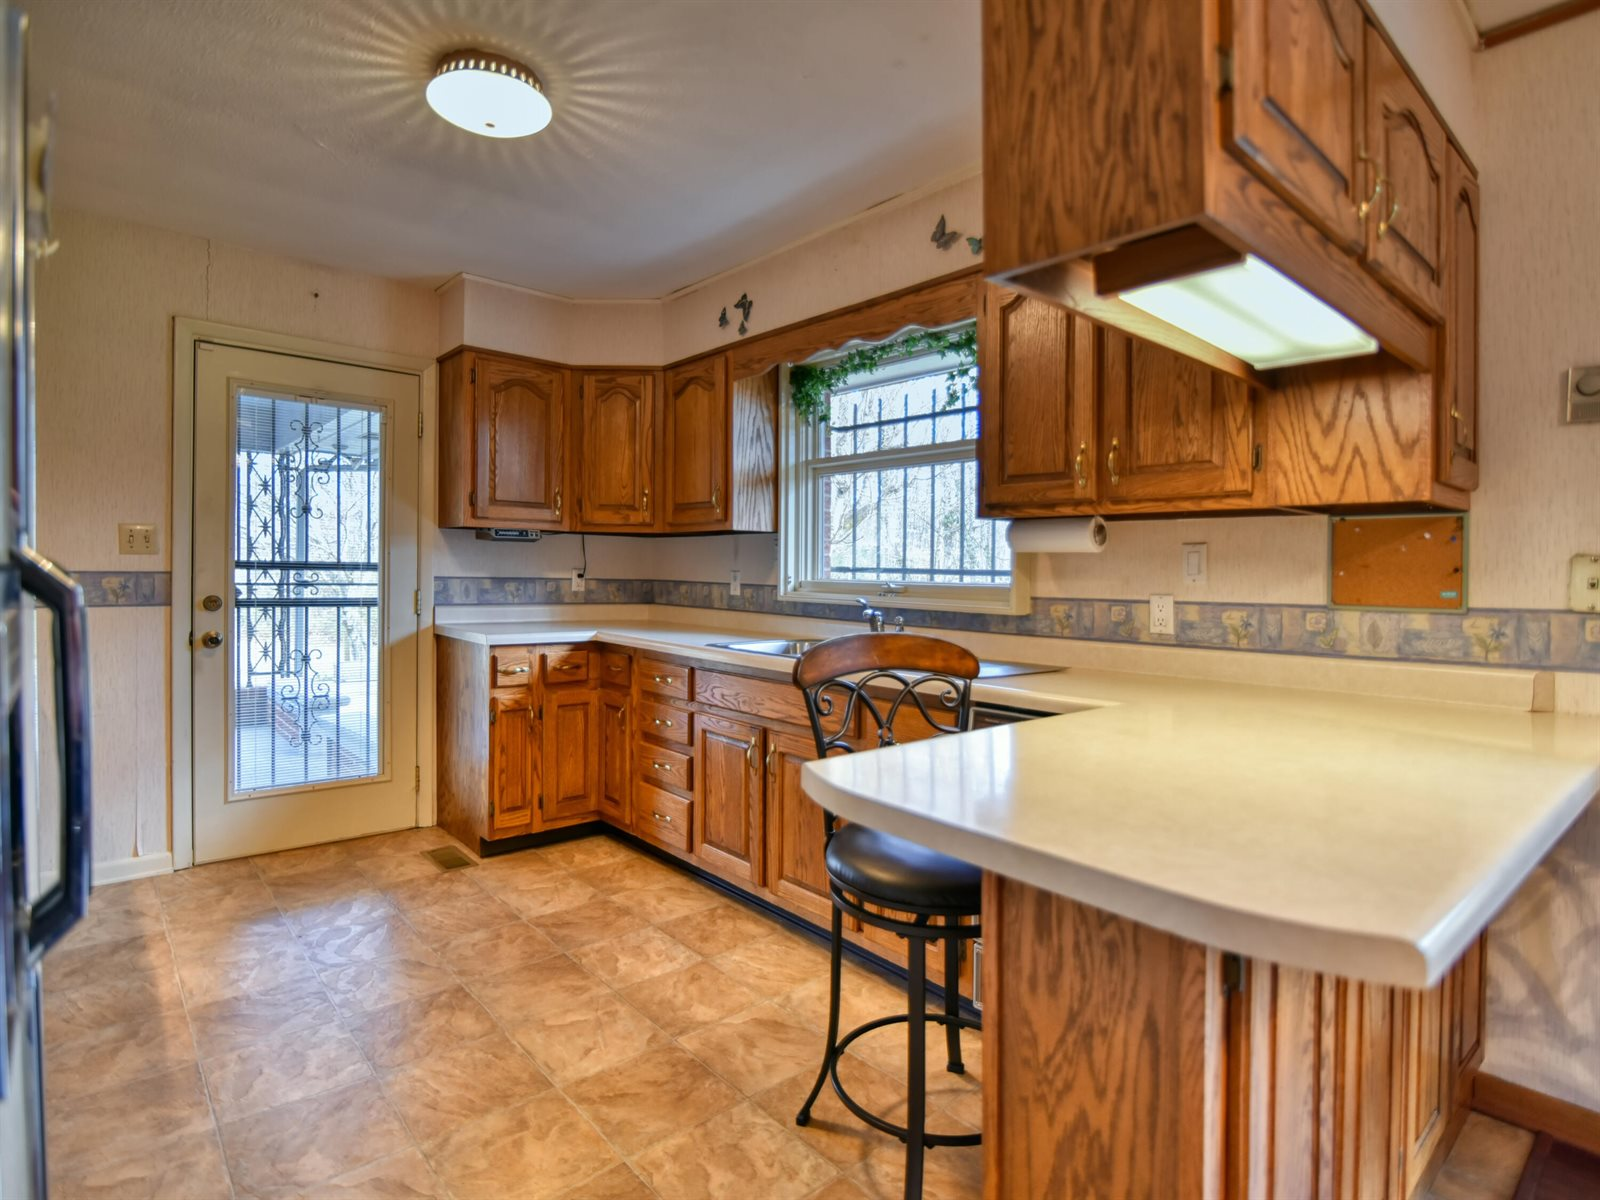 7124 Ruggles Ferry Pike, Knoxville, TN 37924